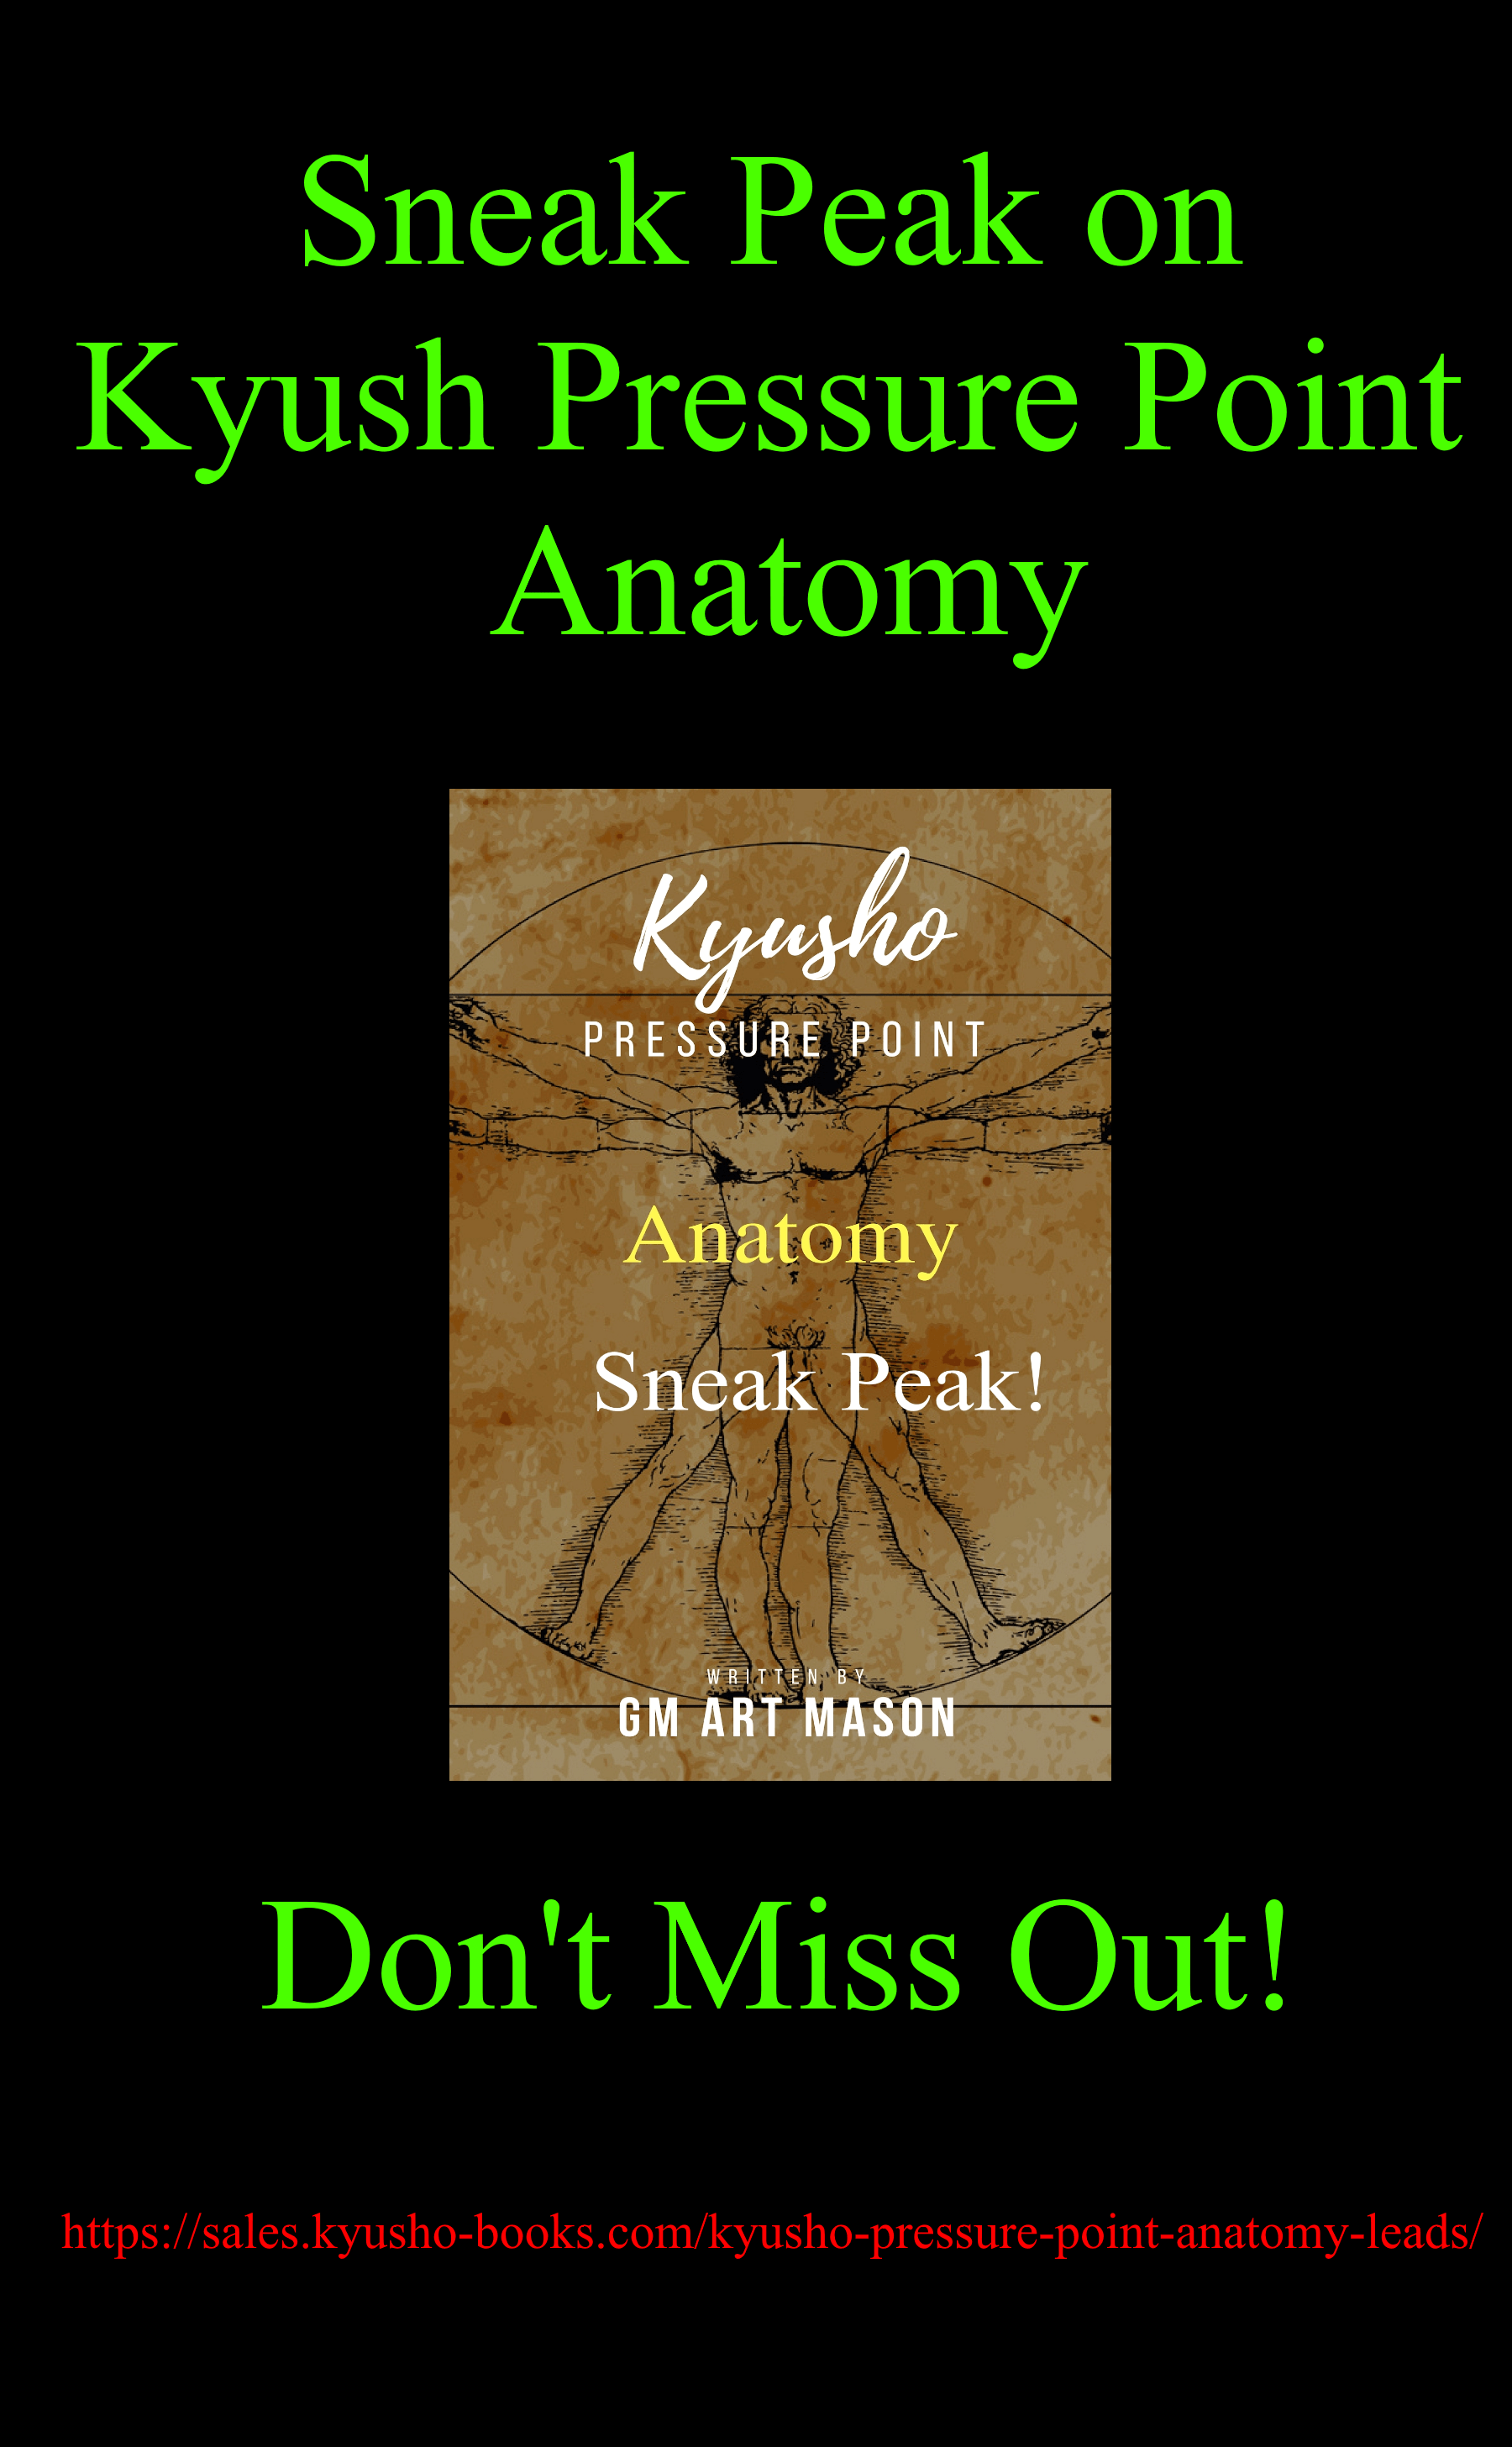 Get a Sneak Peak Kyusho Pressure Point Anatomy